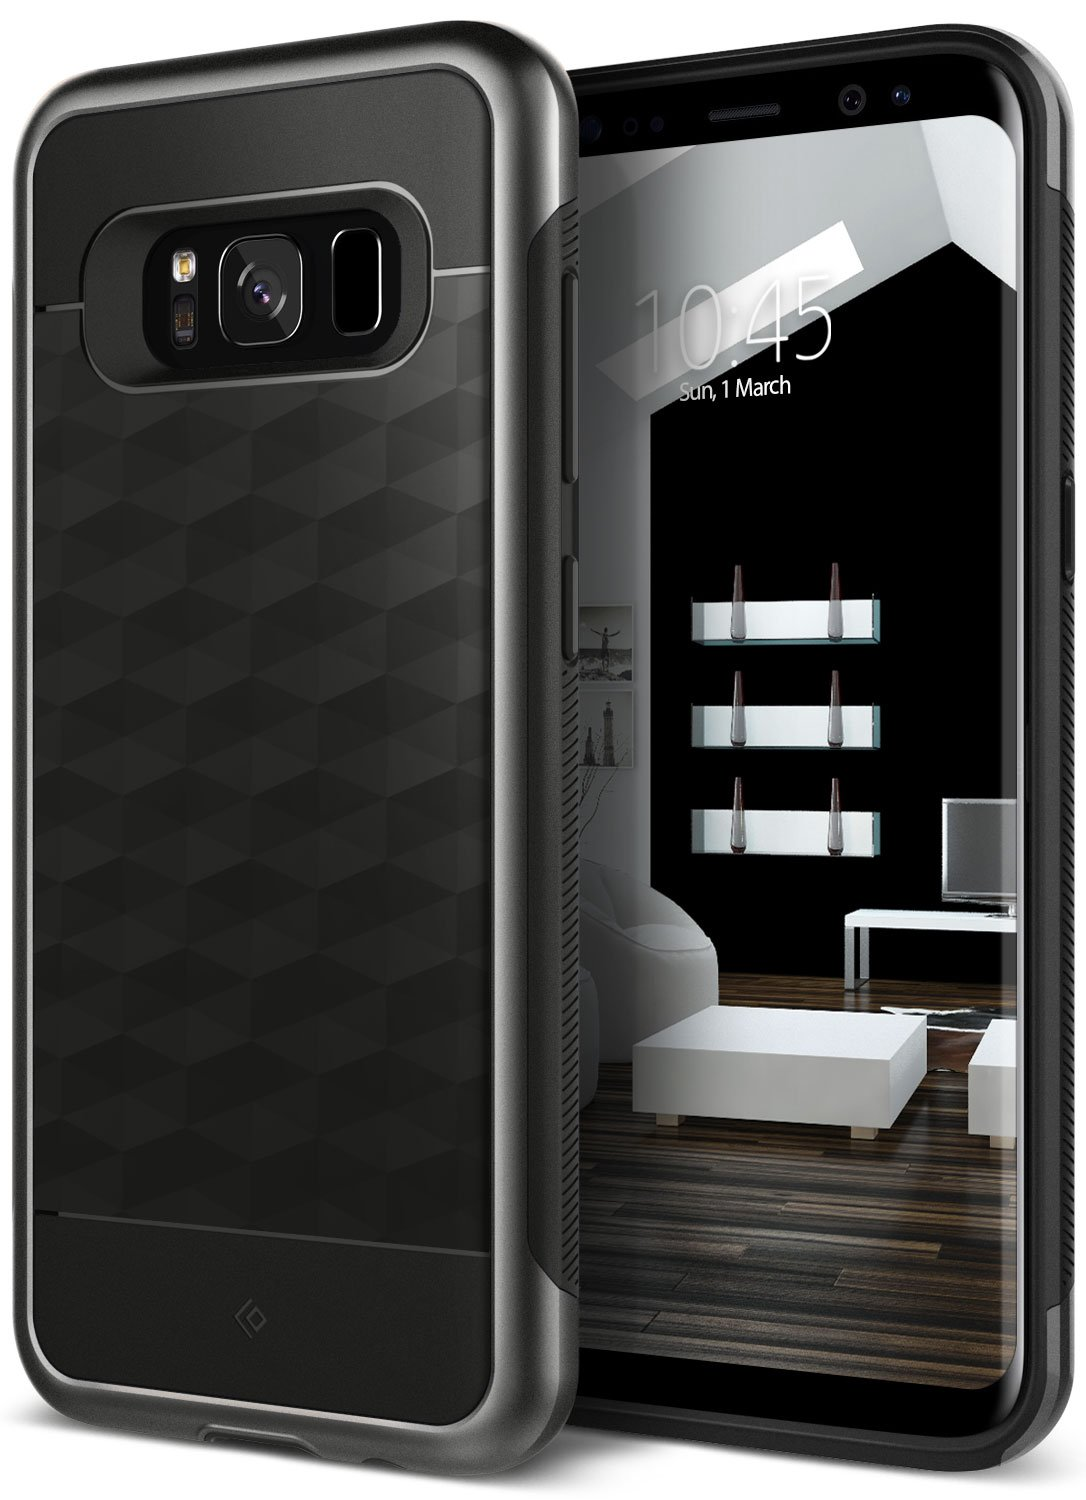 Galaxy S8 Case, Caseology [Parallax Series] Slim Dual Layer Protective Textured Geometric Cover Corner Cushion Design Samsung Galaxy S8 (2017) - Black by Caseology